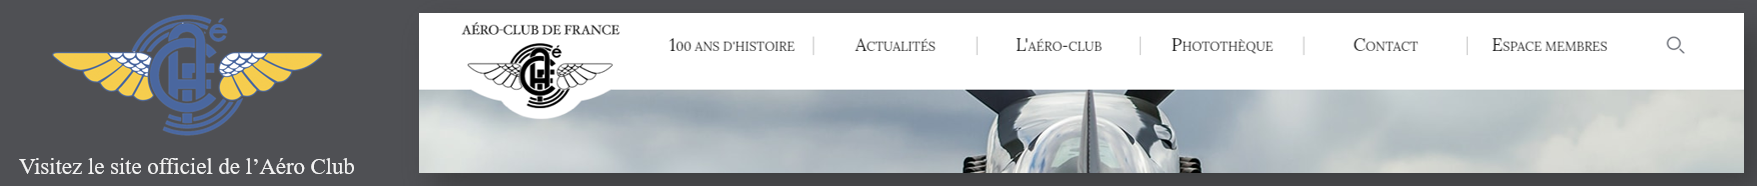 Aéro Club de France - Site Officiel